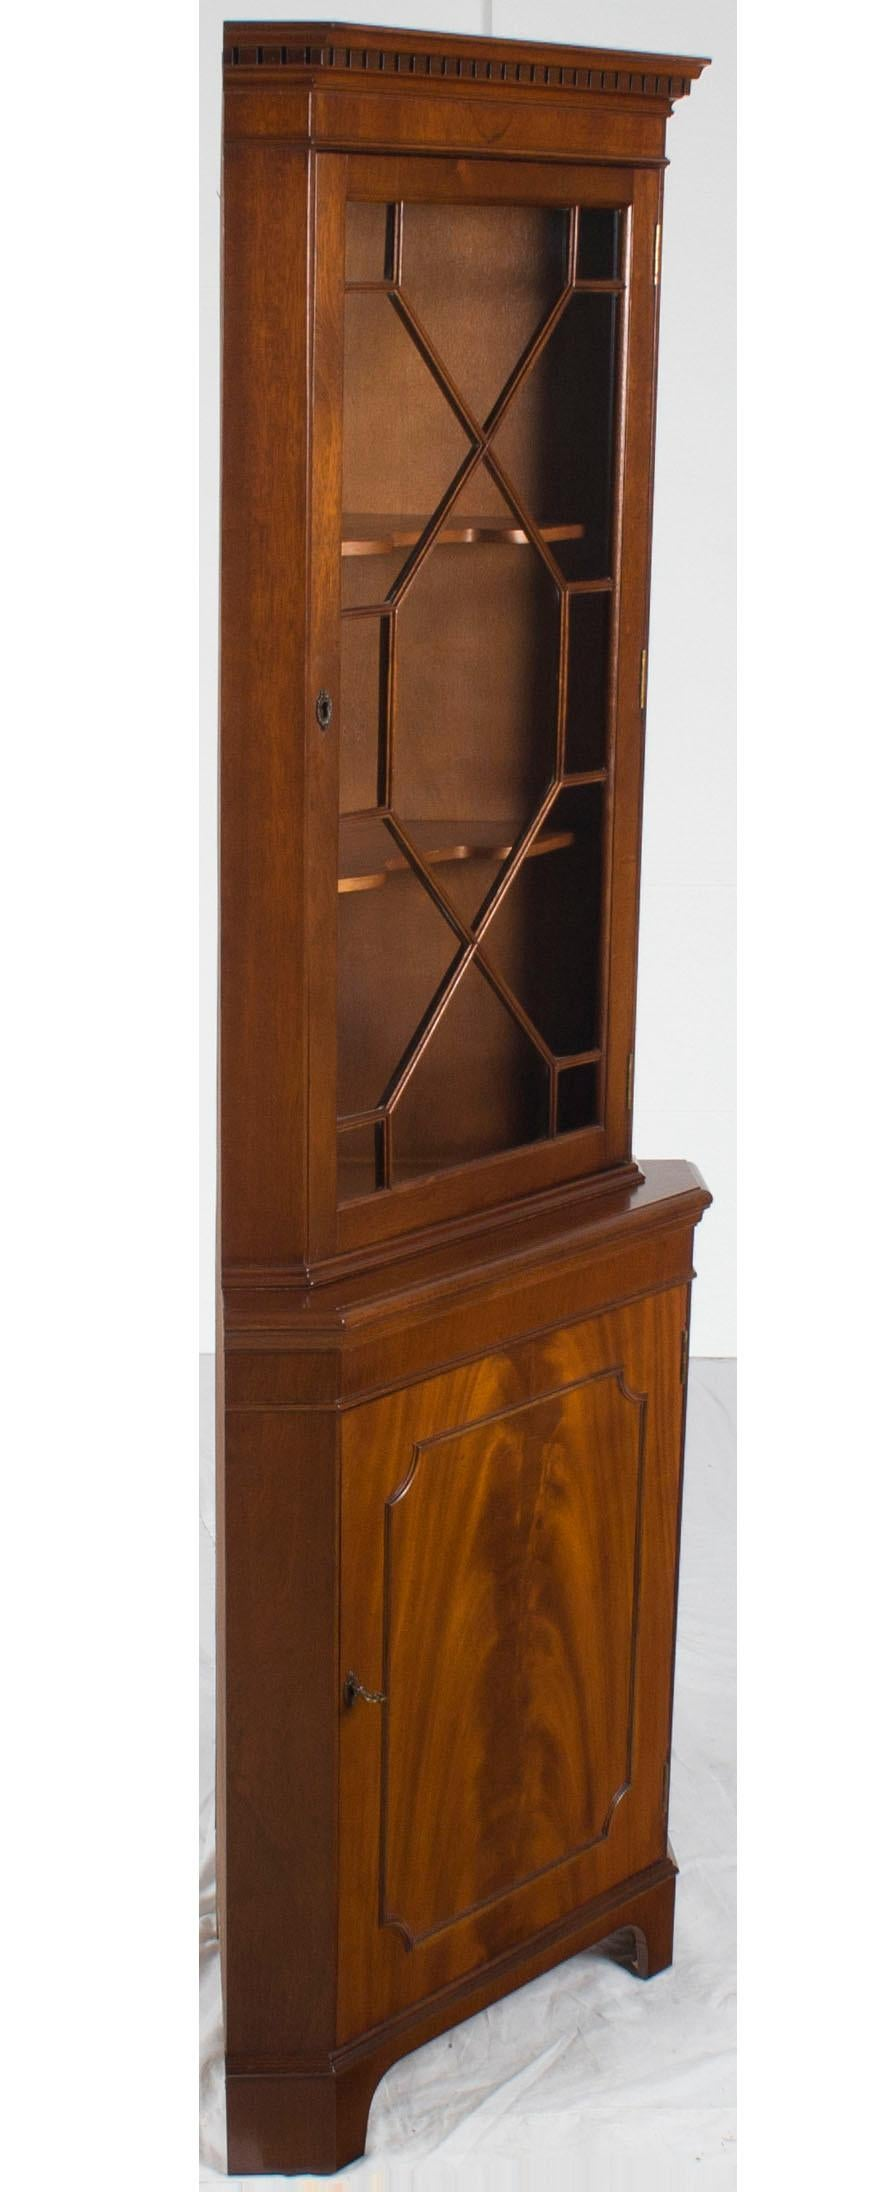 Single Glass Door Mahogany Tall Narrow Corner Cabinet Cupboard Hutch